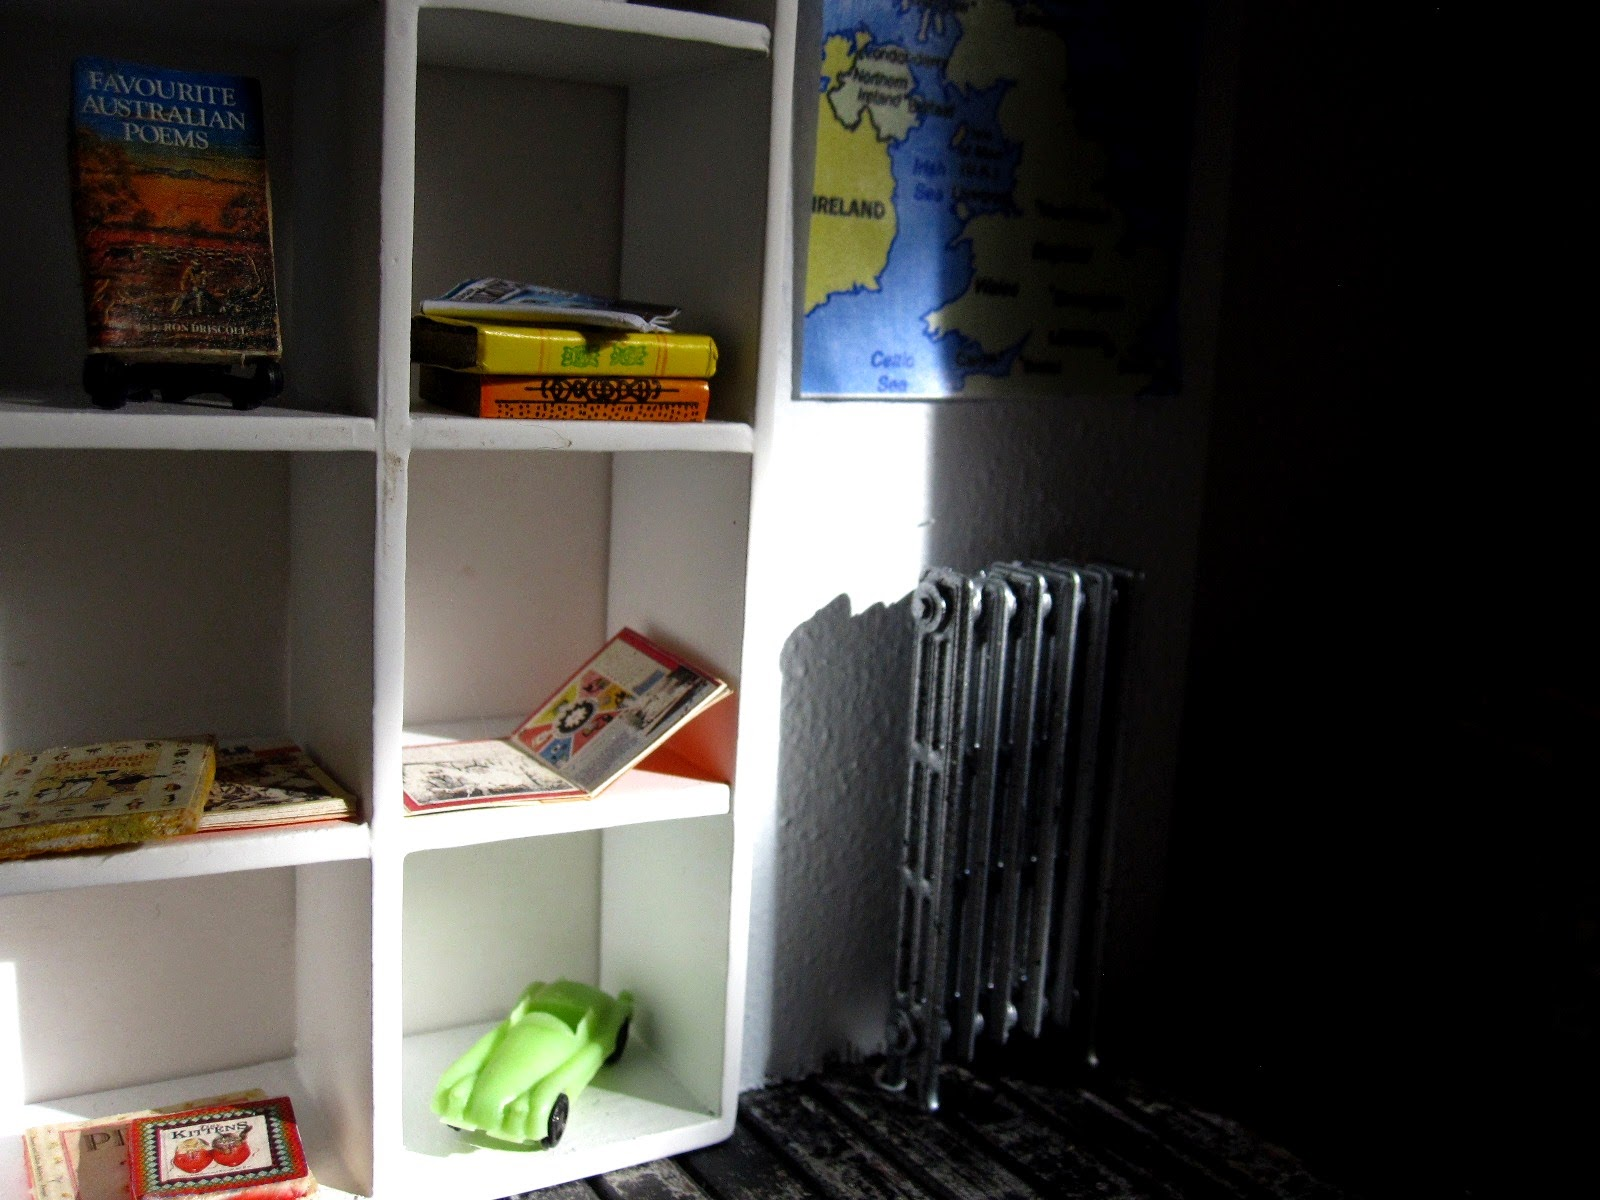 Sun shining on a bookcase in a modern dolls' house miniature pop-up Little Library,